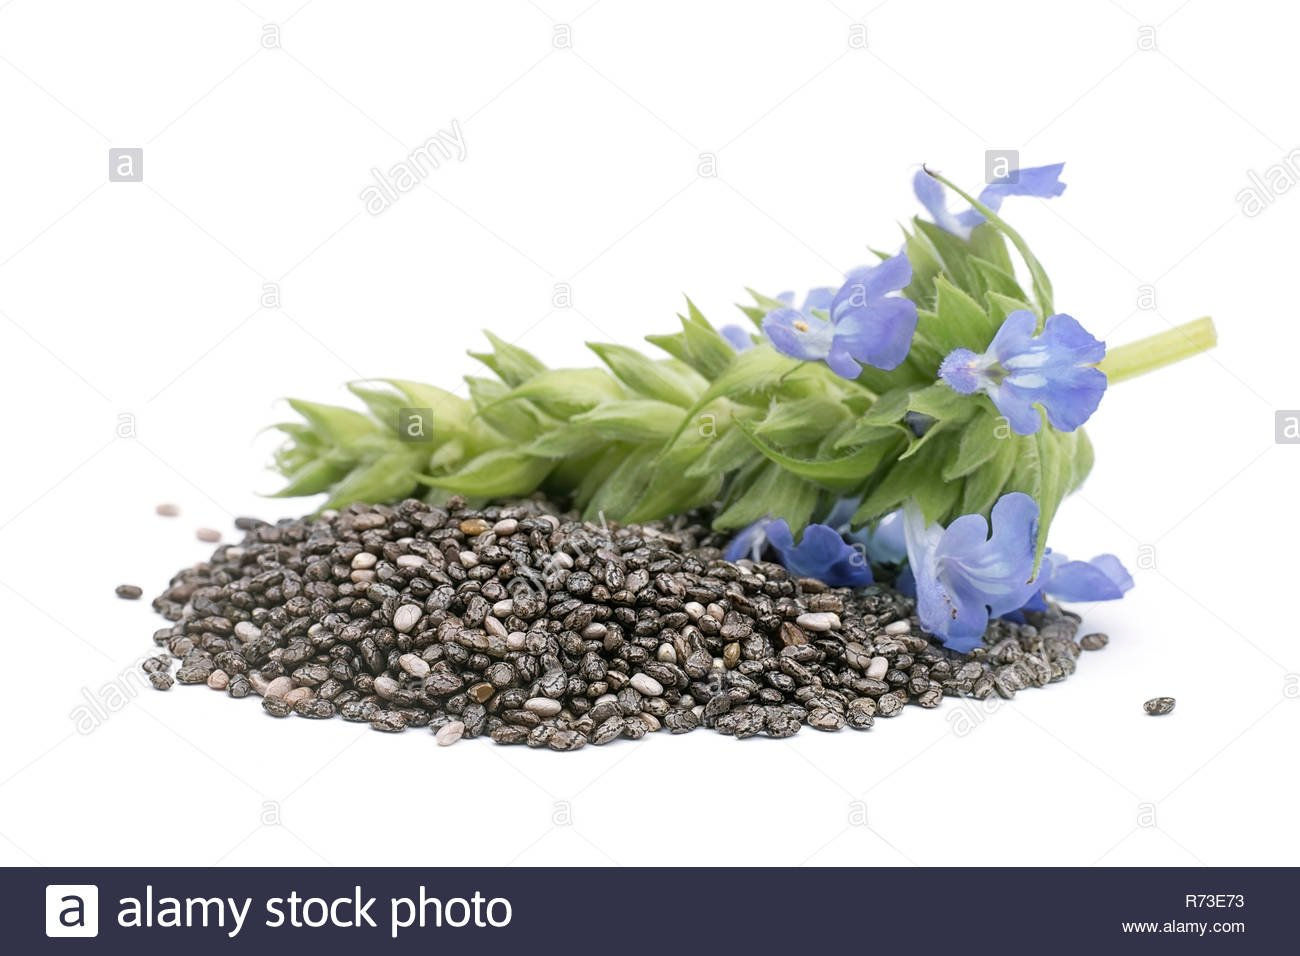 Chia Salvia hispanica Pile of seeds with flowers on white 1300x956